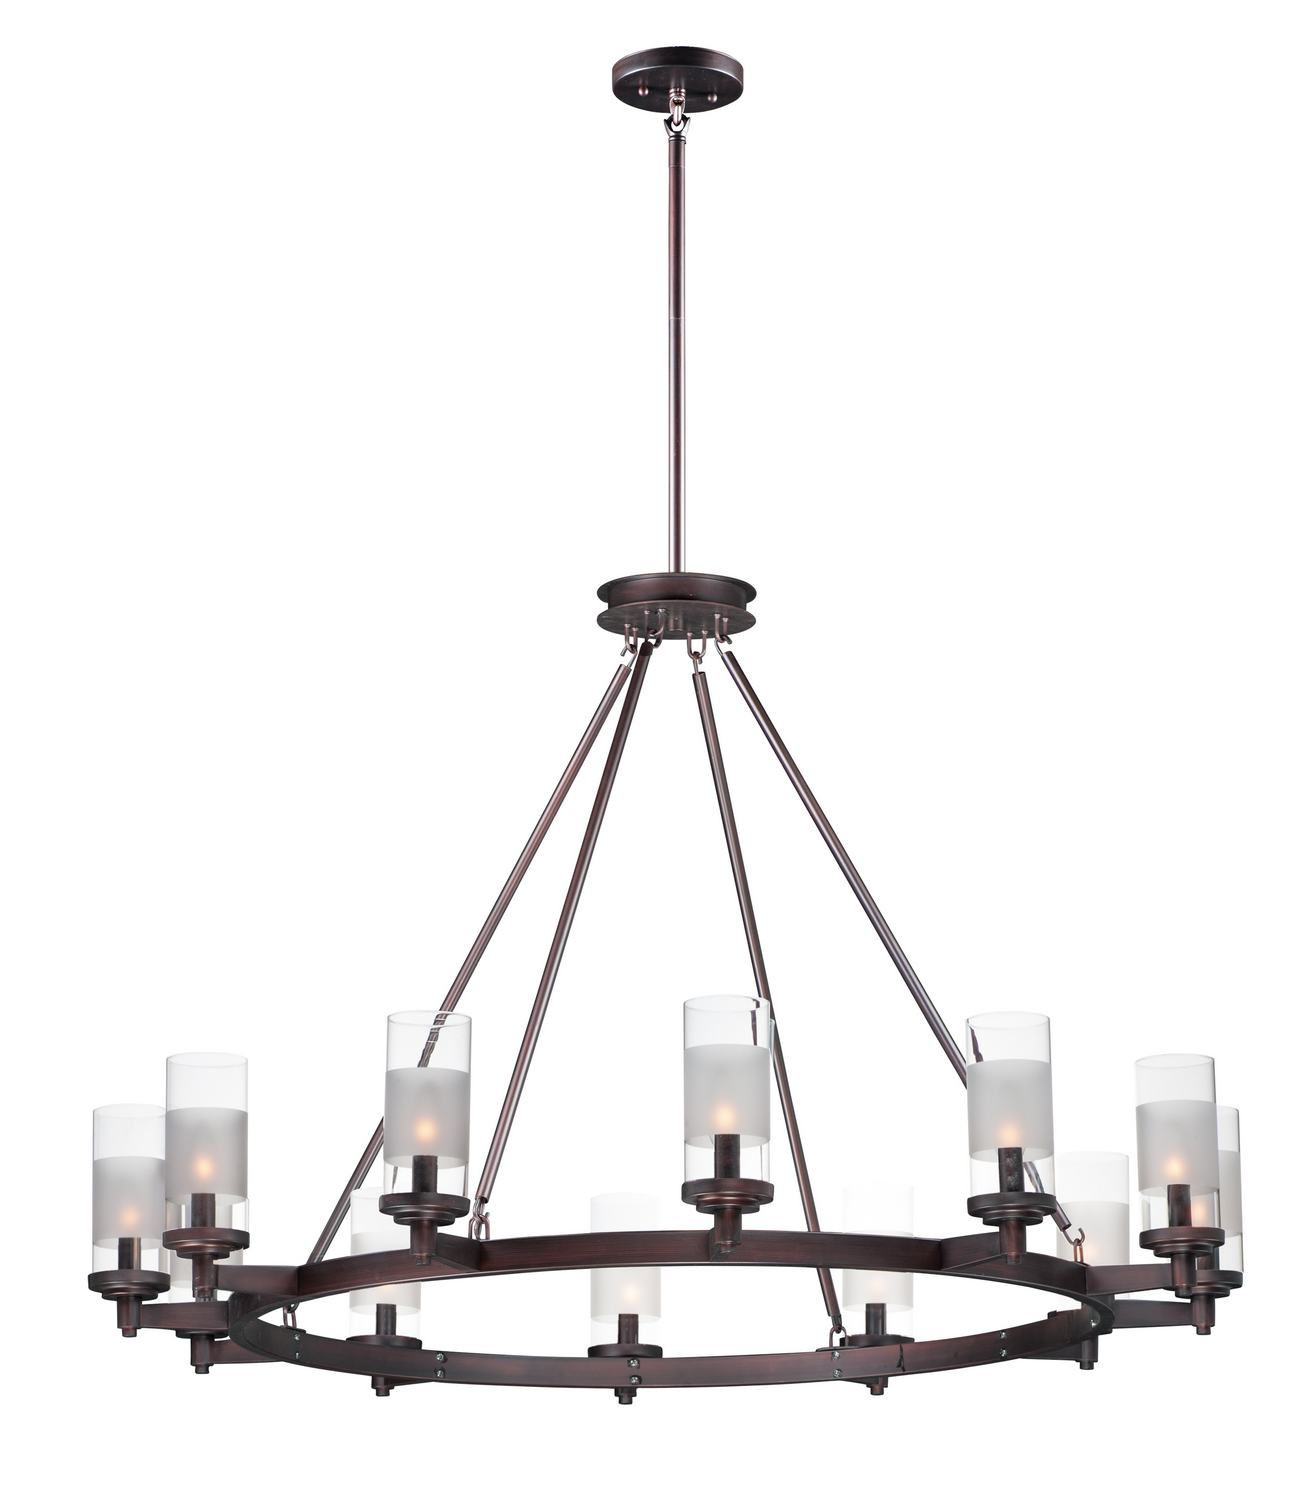 12 Light Chandelier from the Crescendo collection by Maxim 26329CLFTOI